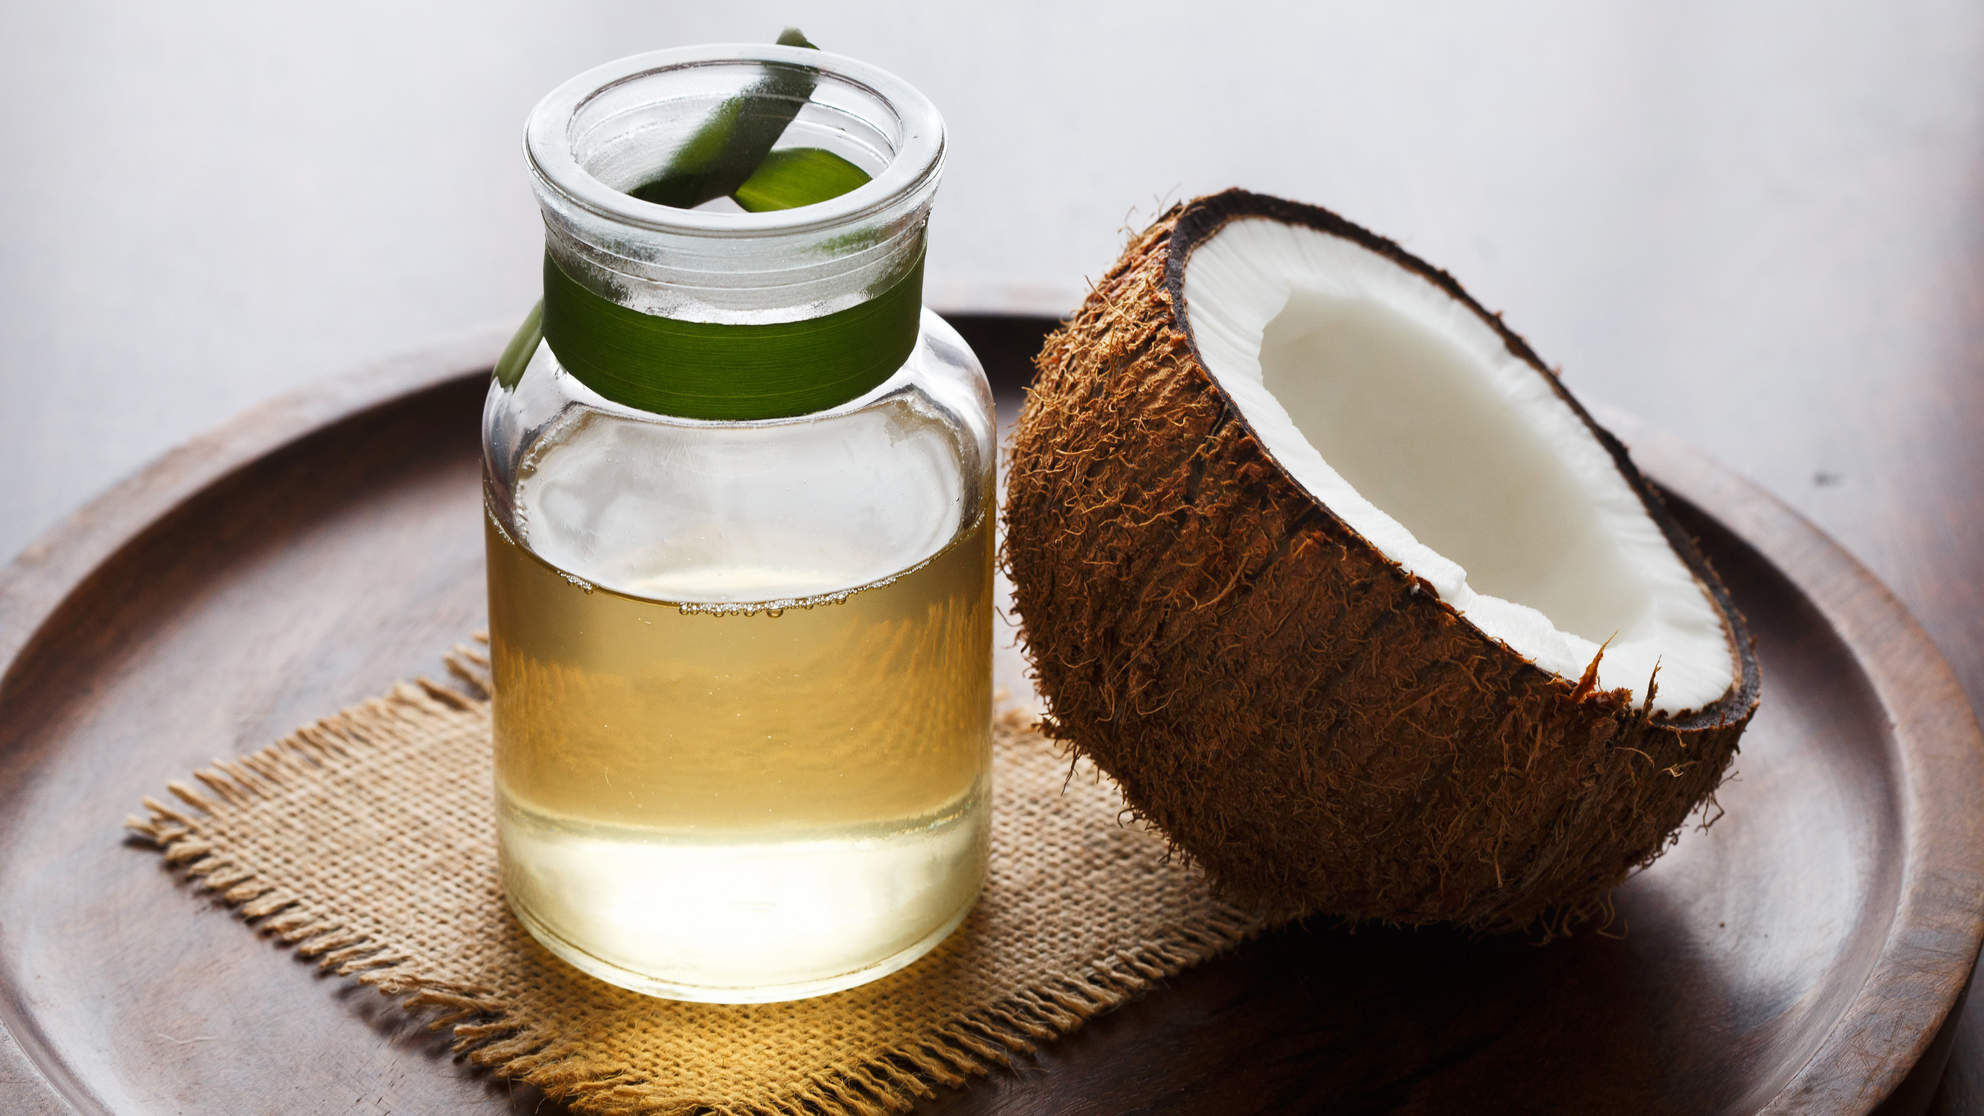 Coconut oil sexual lubricant safe